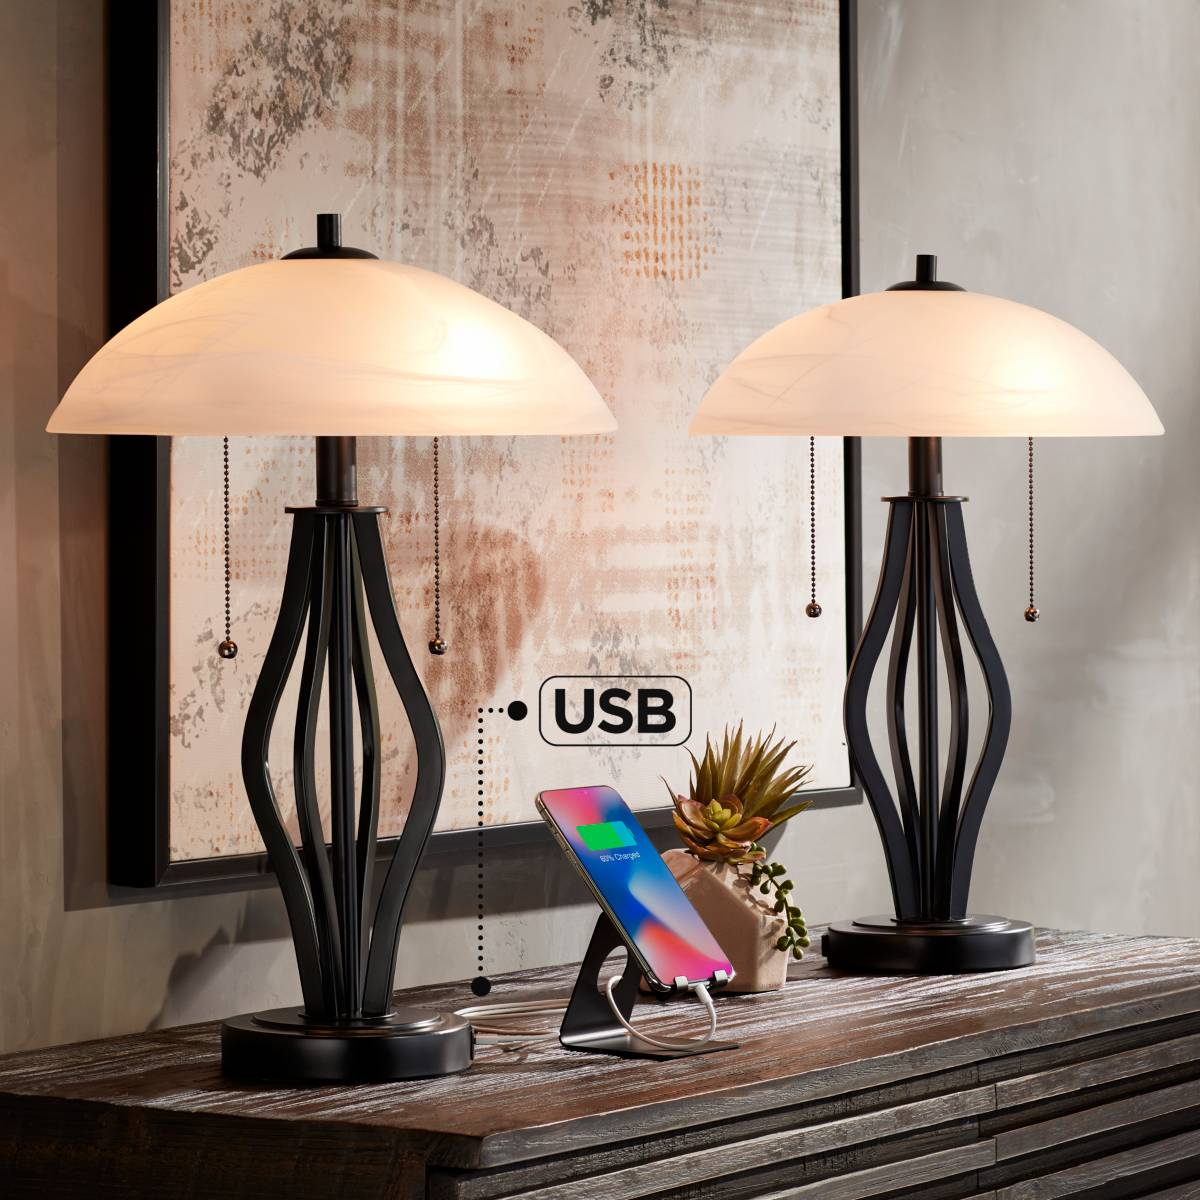 Lamp Plus Stores: Black, Nightstand Lamps, Table Lamps